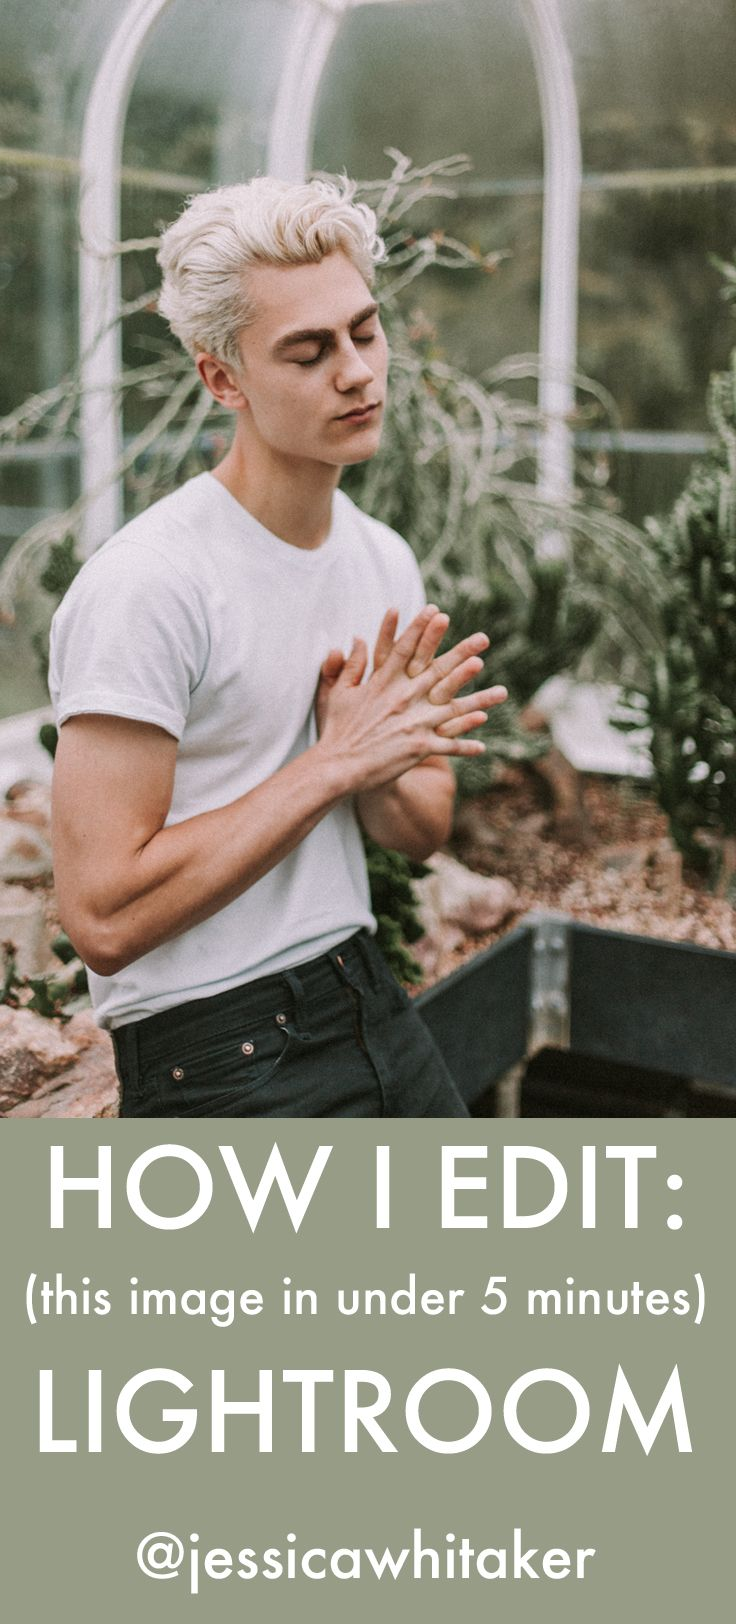 how i edited this male model portrait in under five minutes using adobe lightroom 5! this photography tutorial is perfect for any beginner with little or no experience in post production. easy, simple, and pretty! i used the LXC (loren & chris) presets from tribe archipelago for this greenhouse photoshoot. https://www.youtube.com/watch?v=AEcSoatbaHM